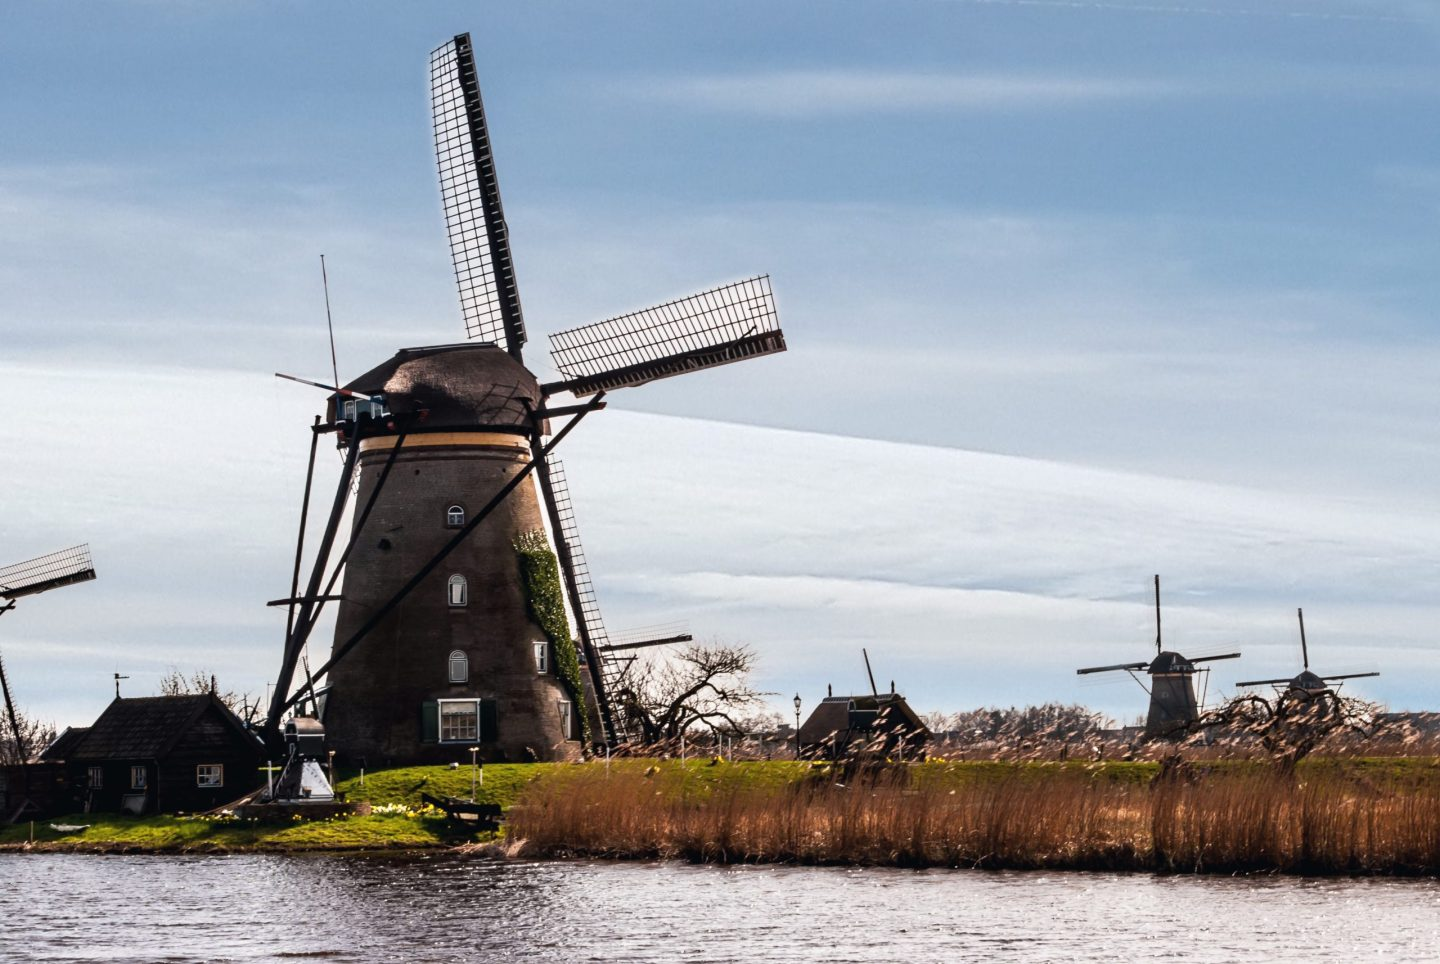 The Windmills of Kinderdijk in the Netherlands